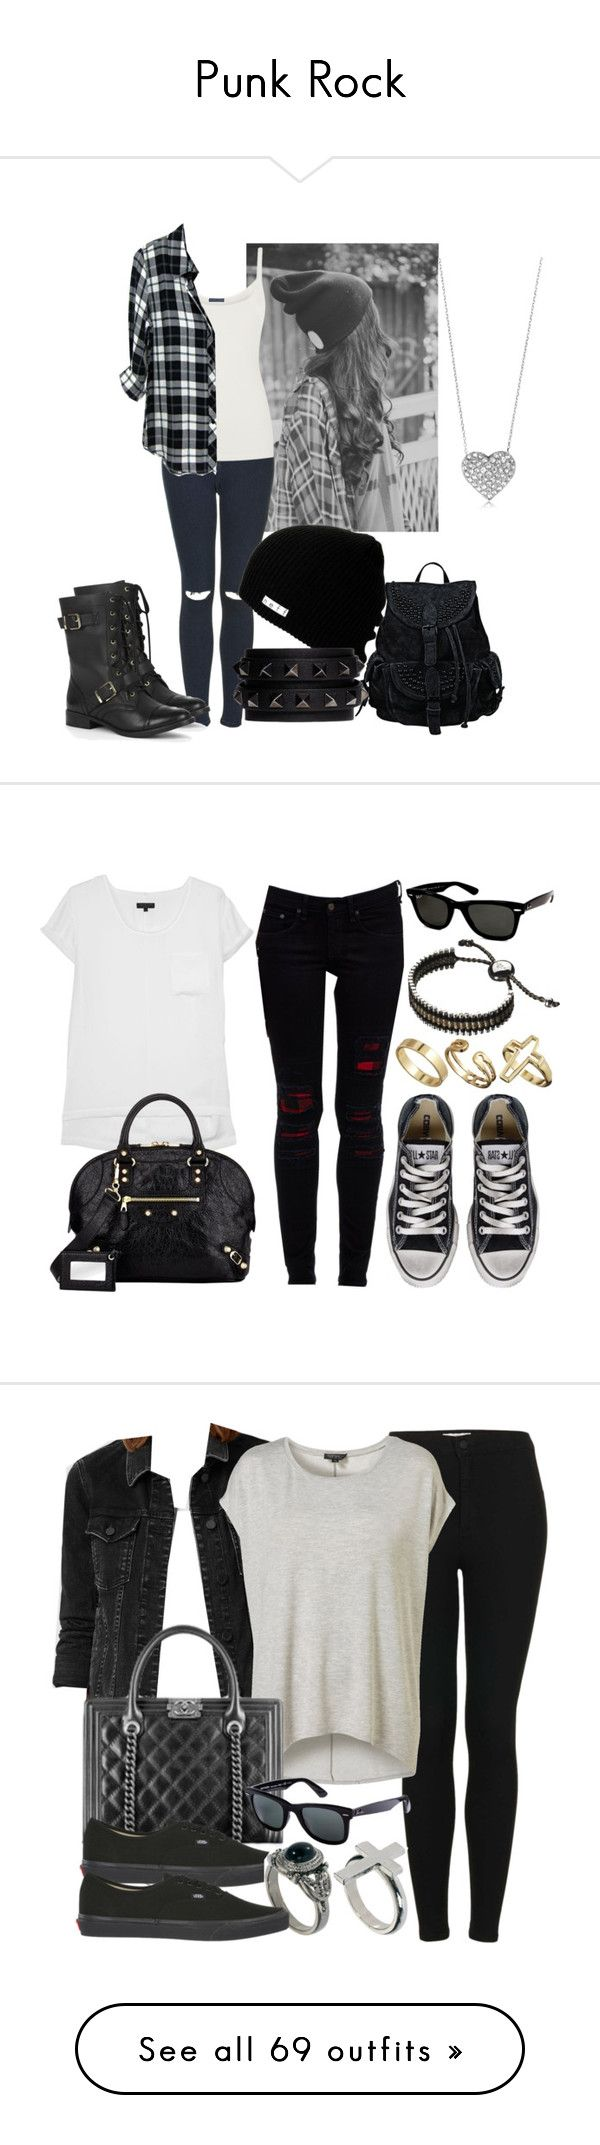 """""""Punk Rock"""" by pebble2000 ❤ liked on Polyvore"""